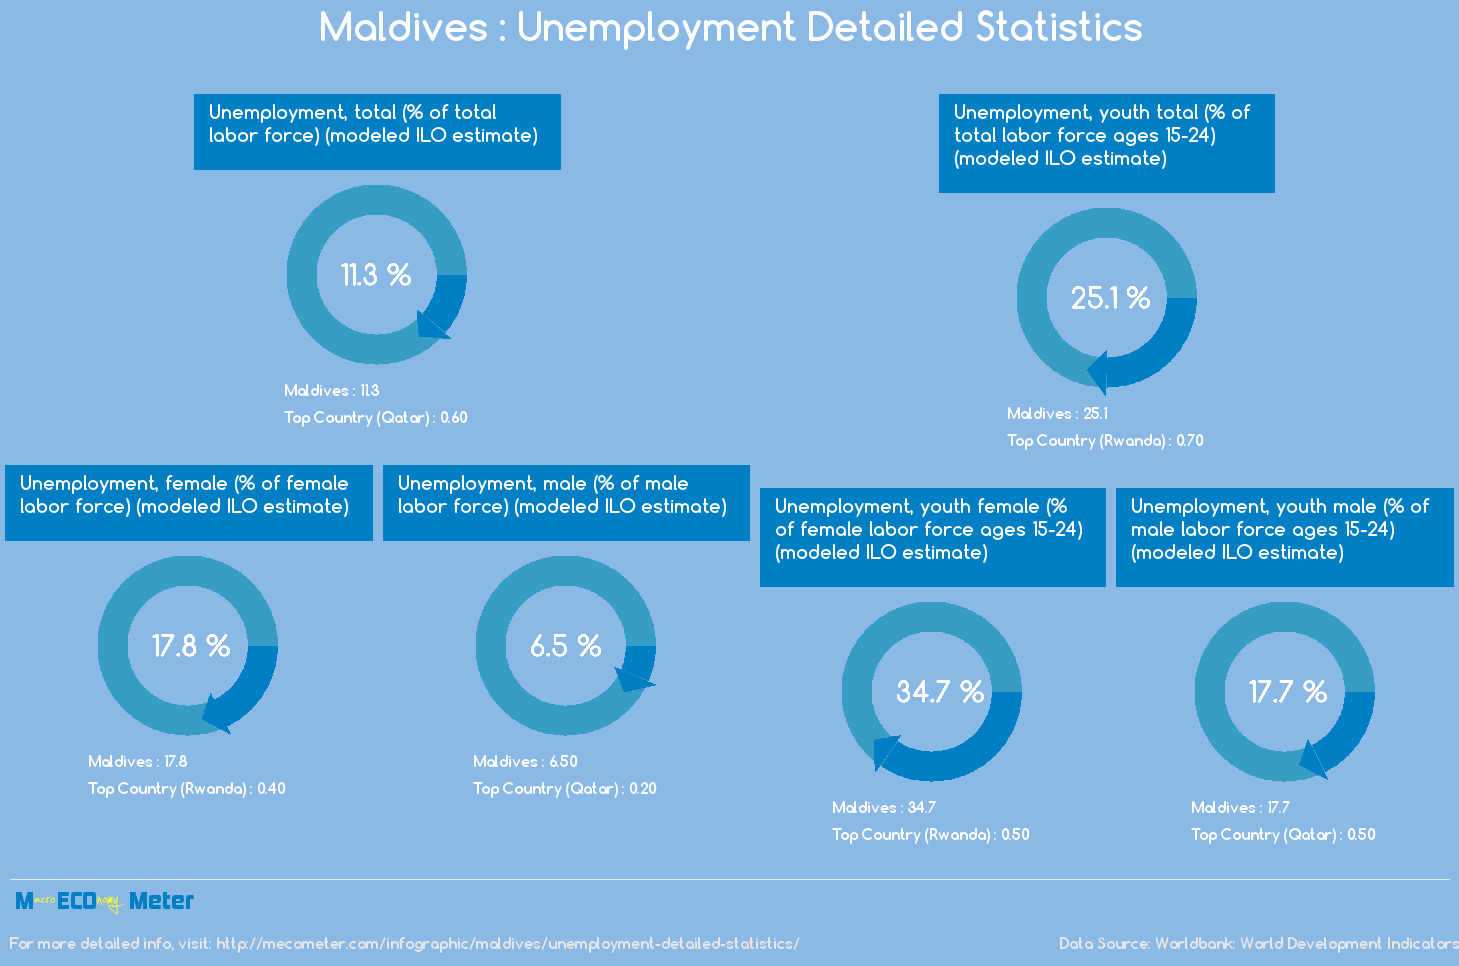 Maldives : Unemployment Detailed Statistics